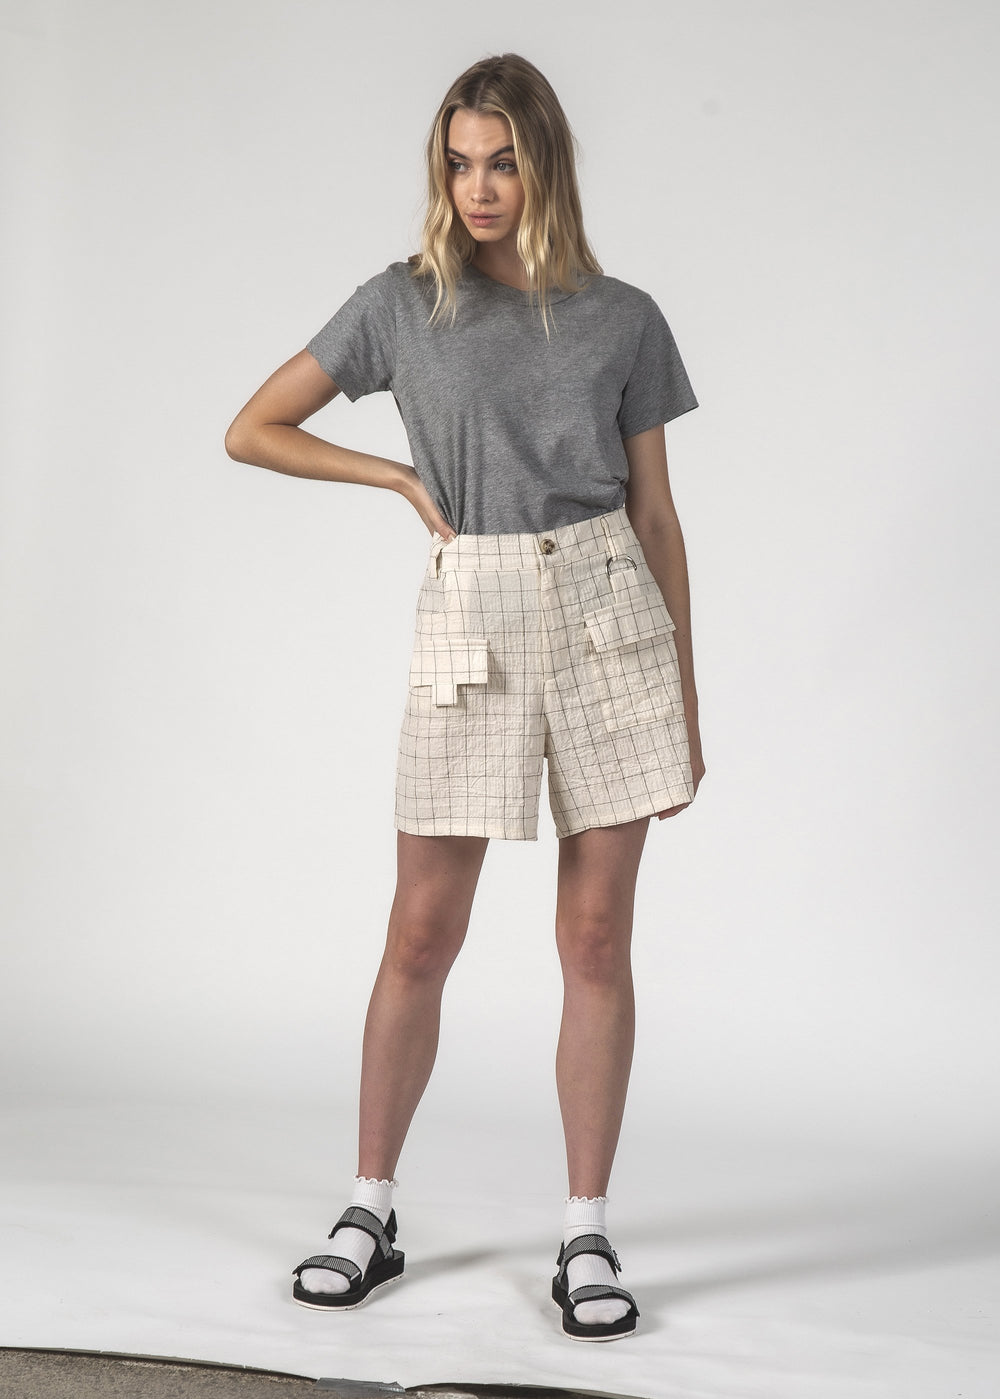 SQUAD SHORT - Cream Grid